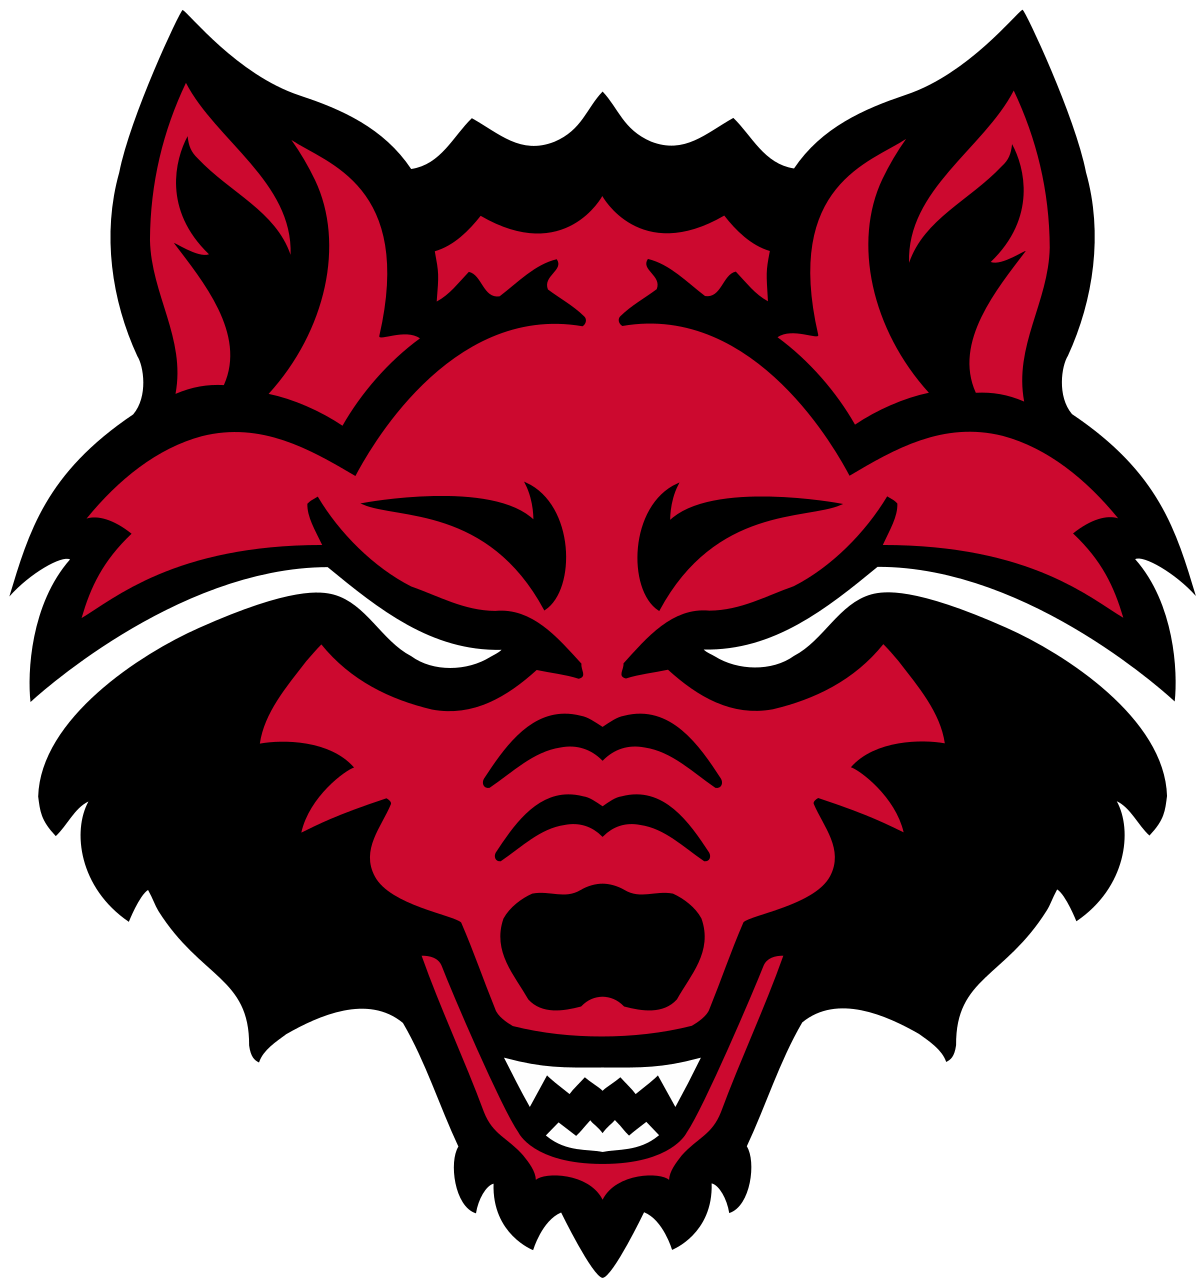 Wolves clipart football. The arkansas state red